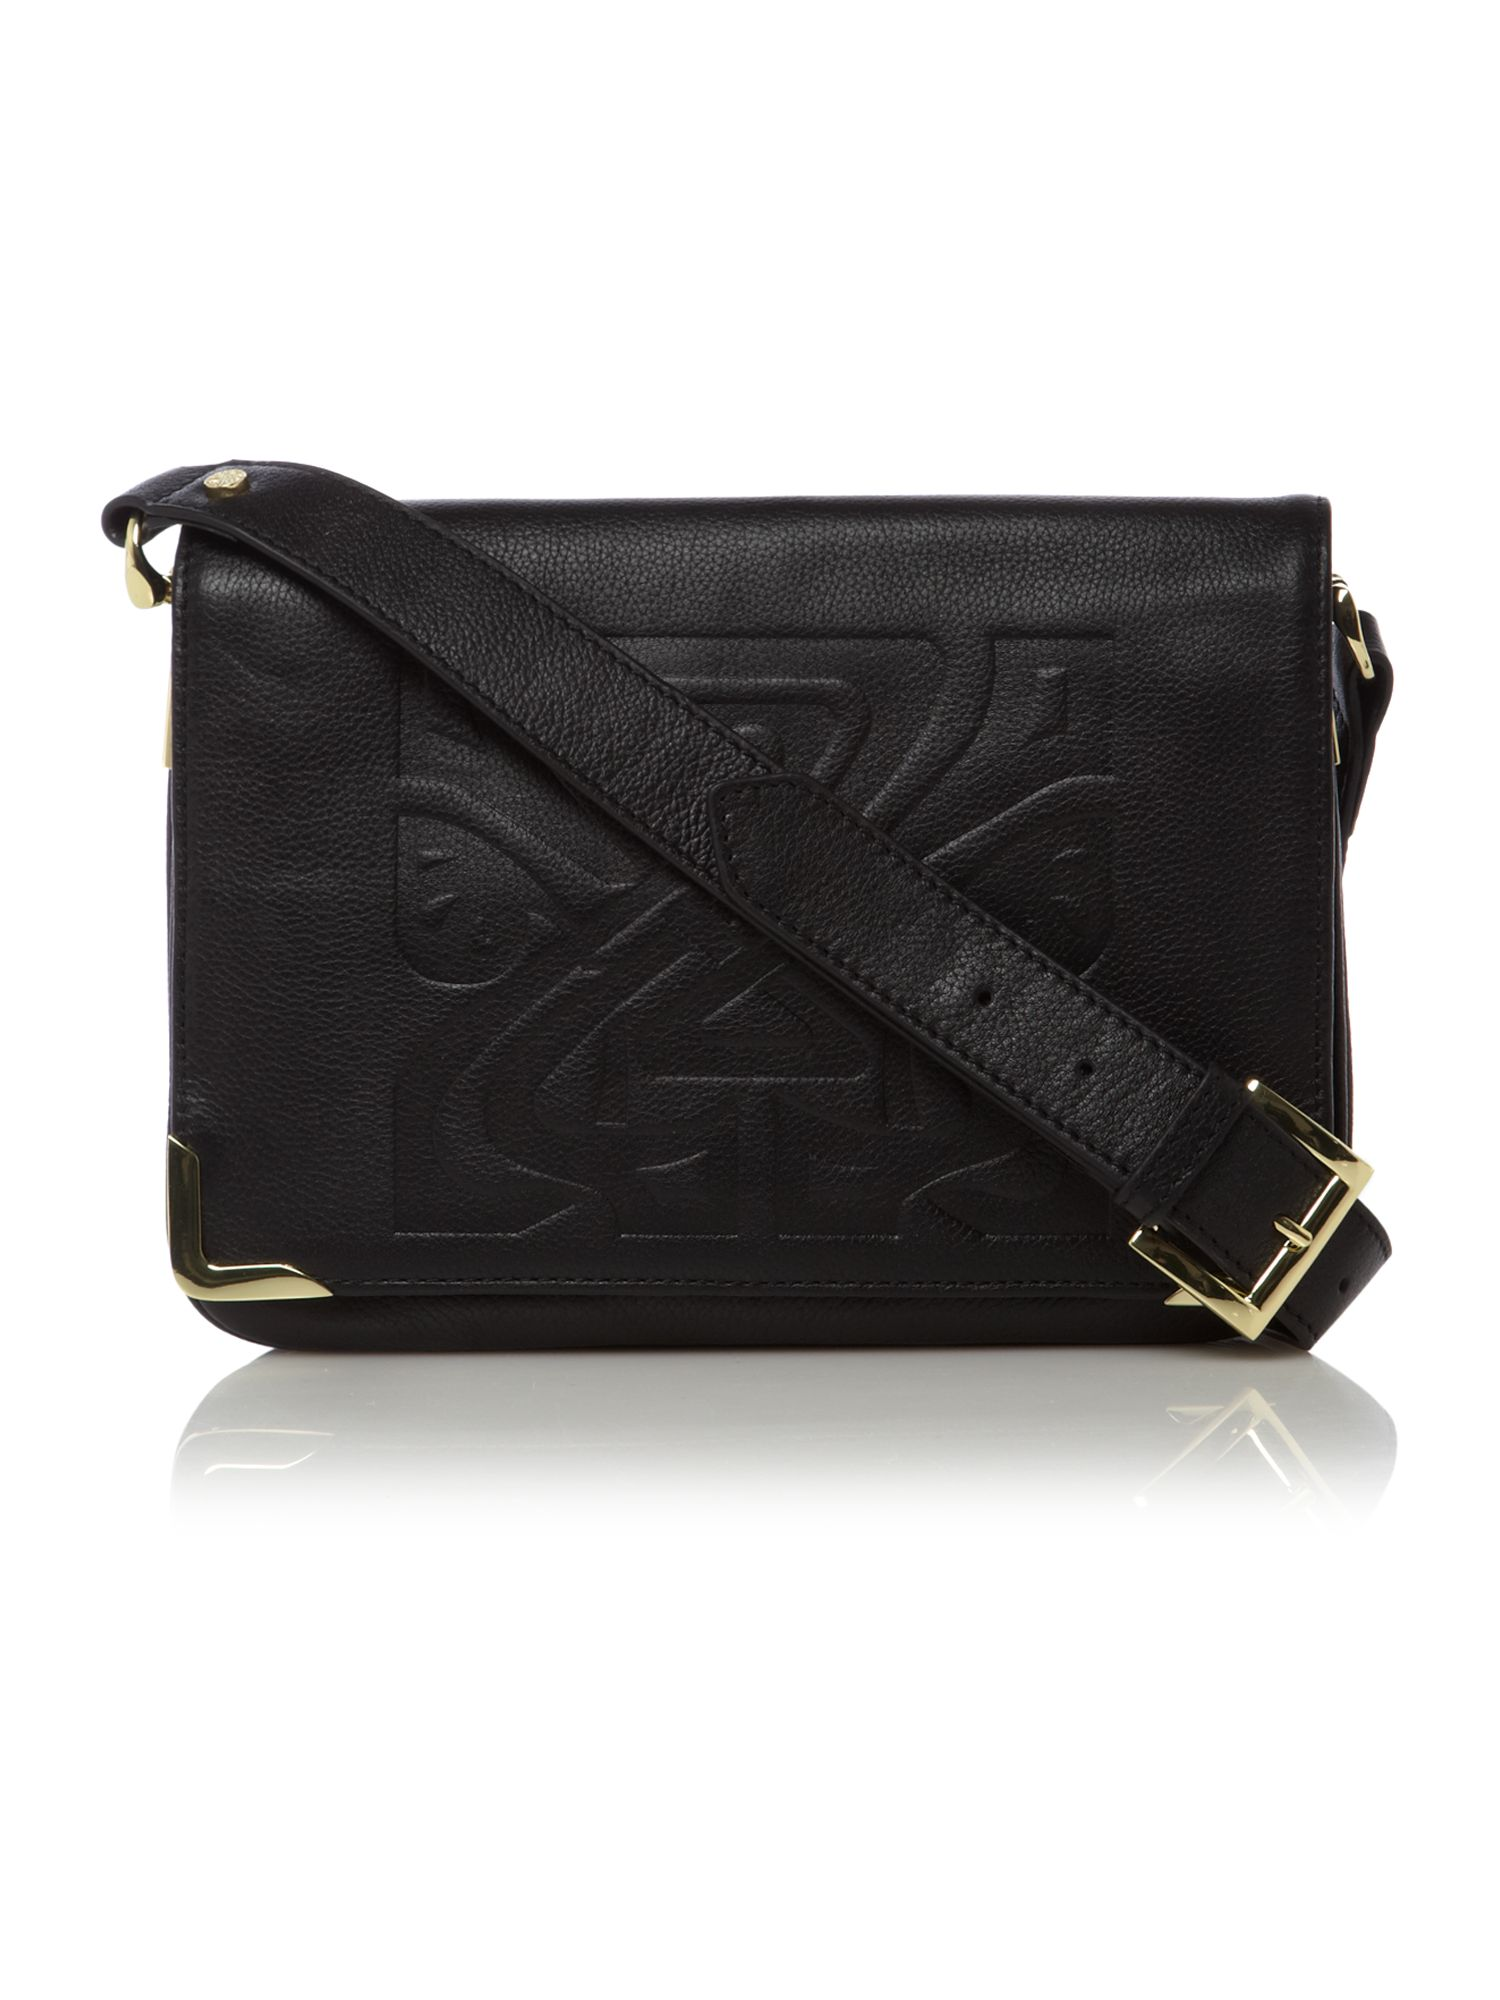 Gretal embossed leather logo shoulder bag